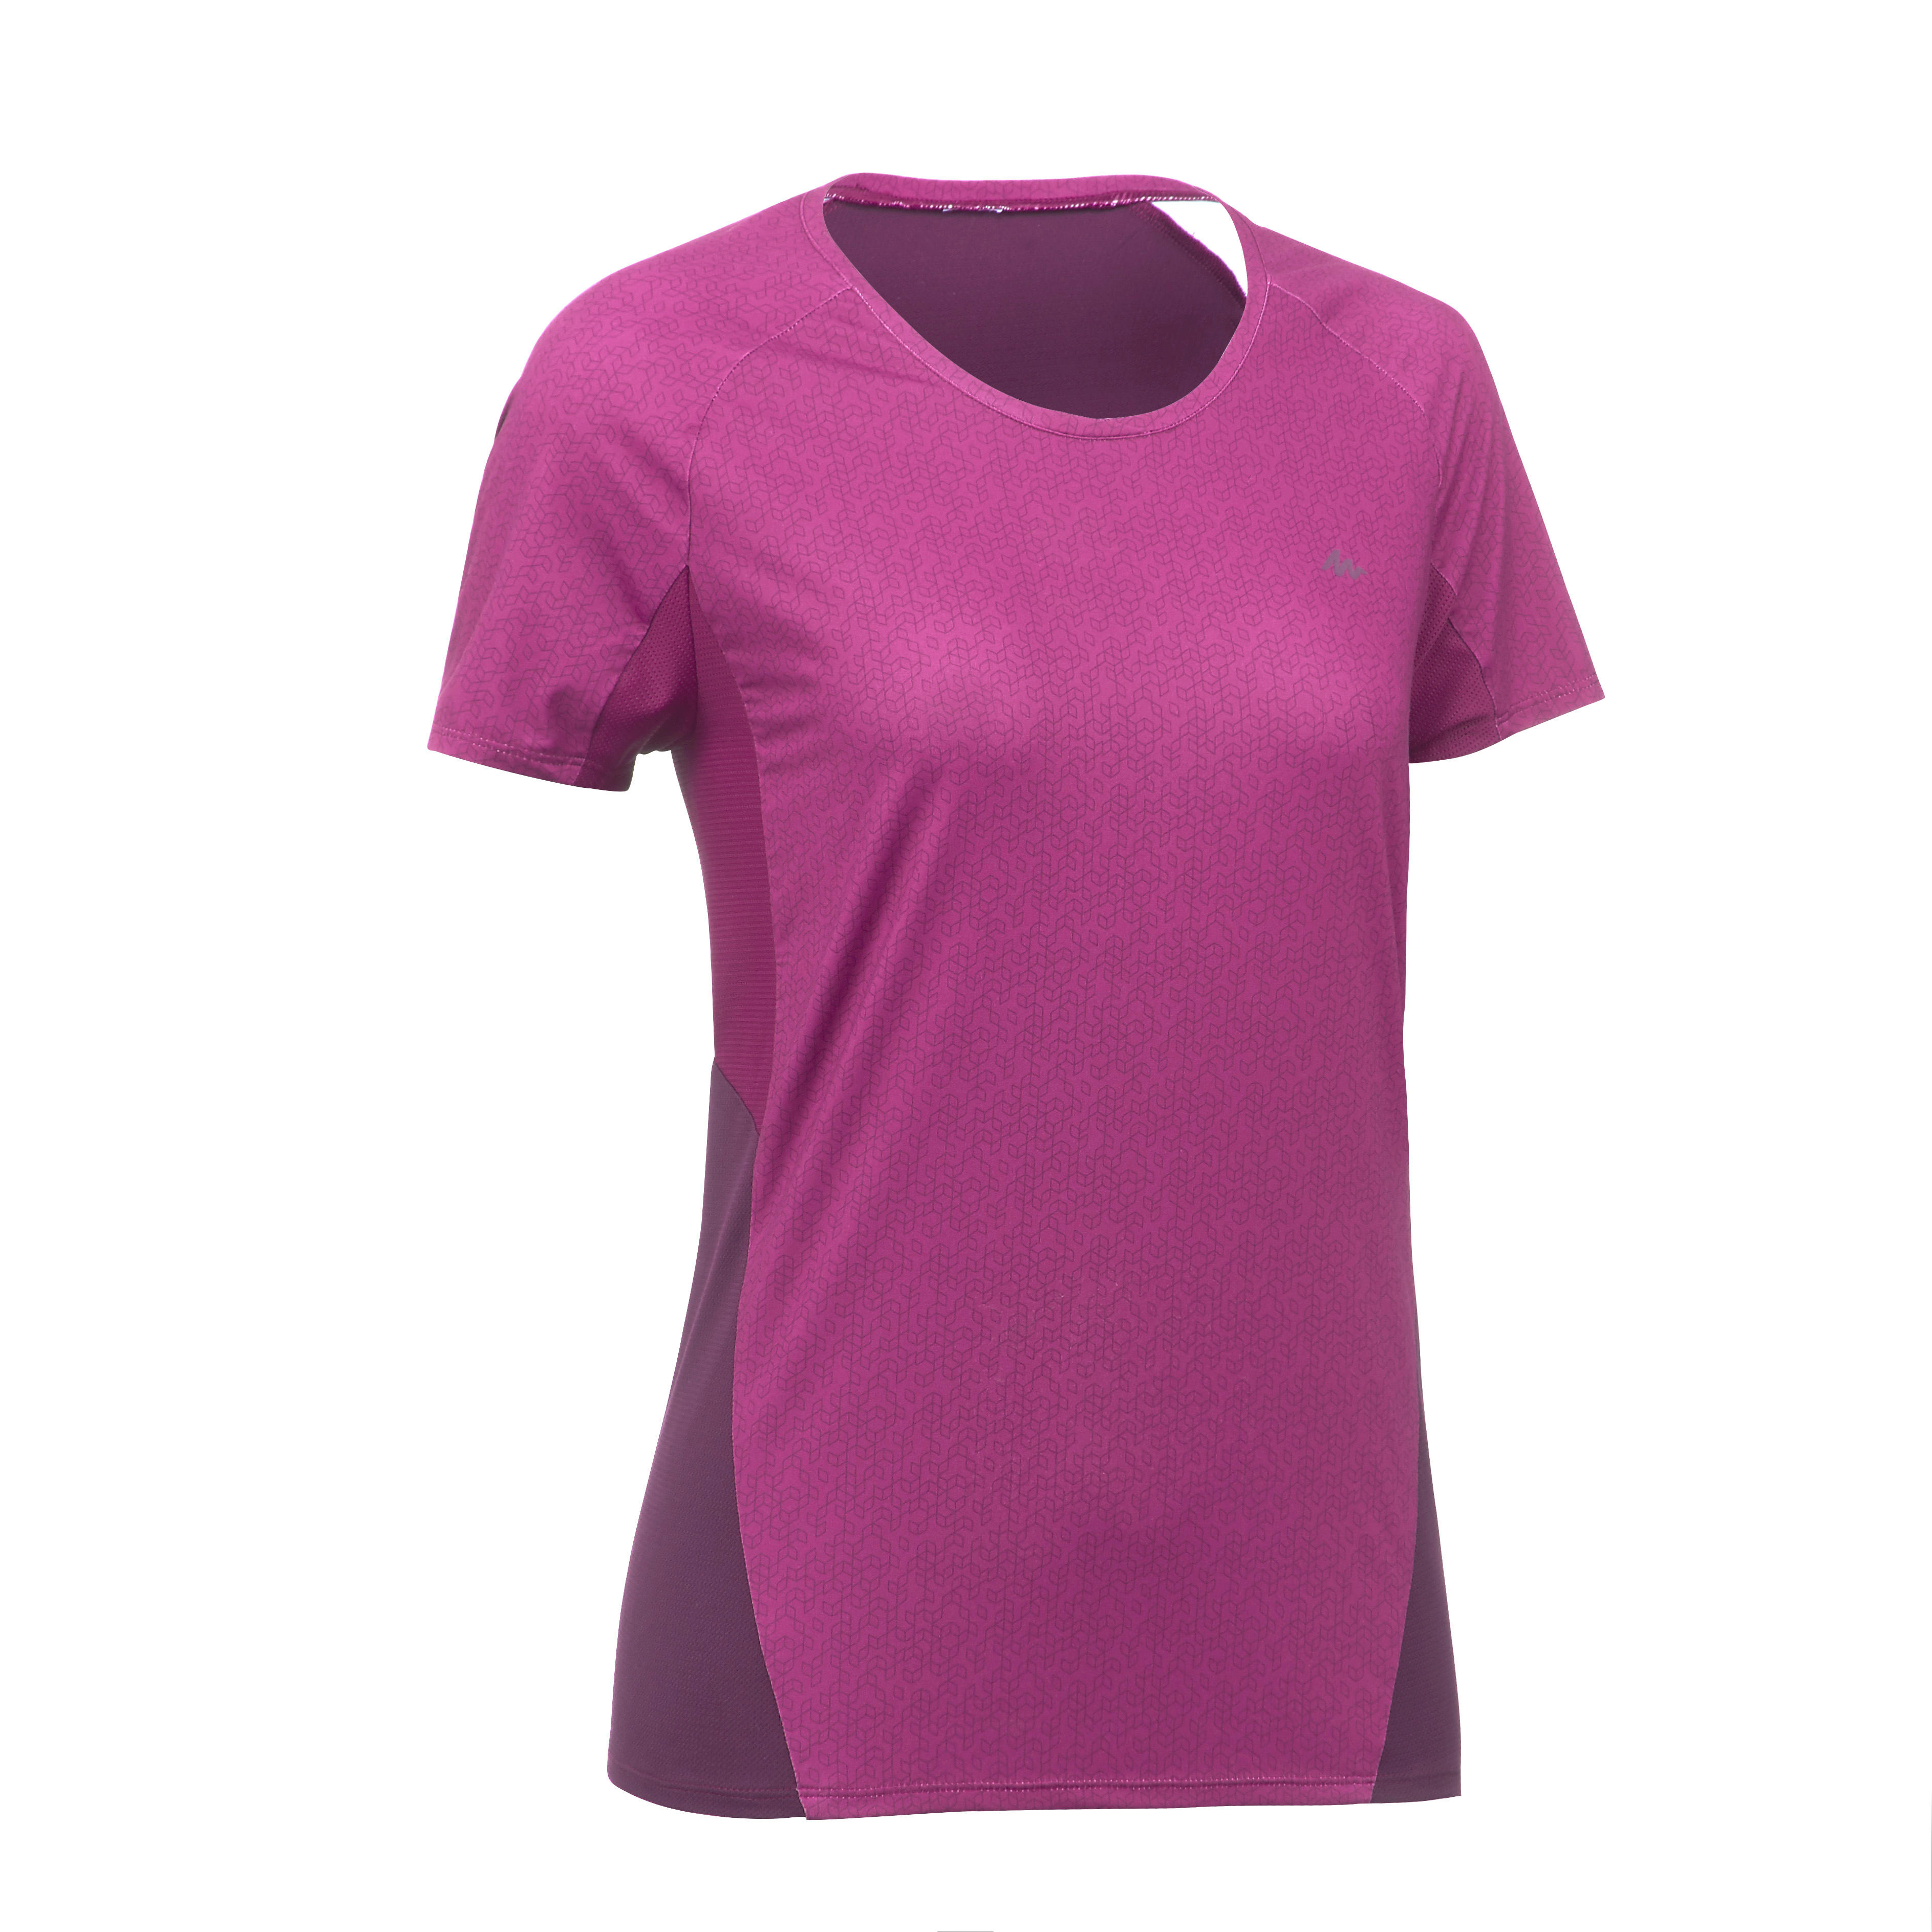 MH500 Women's Short-sleeved Mountain Hiking T-Shirt - Plum